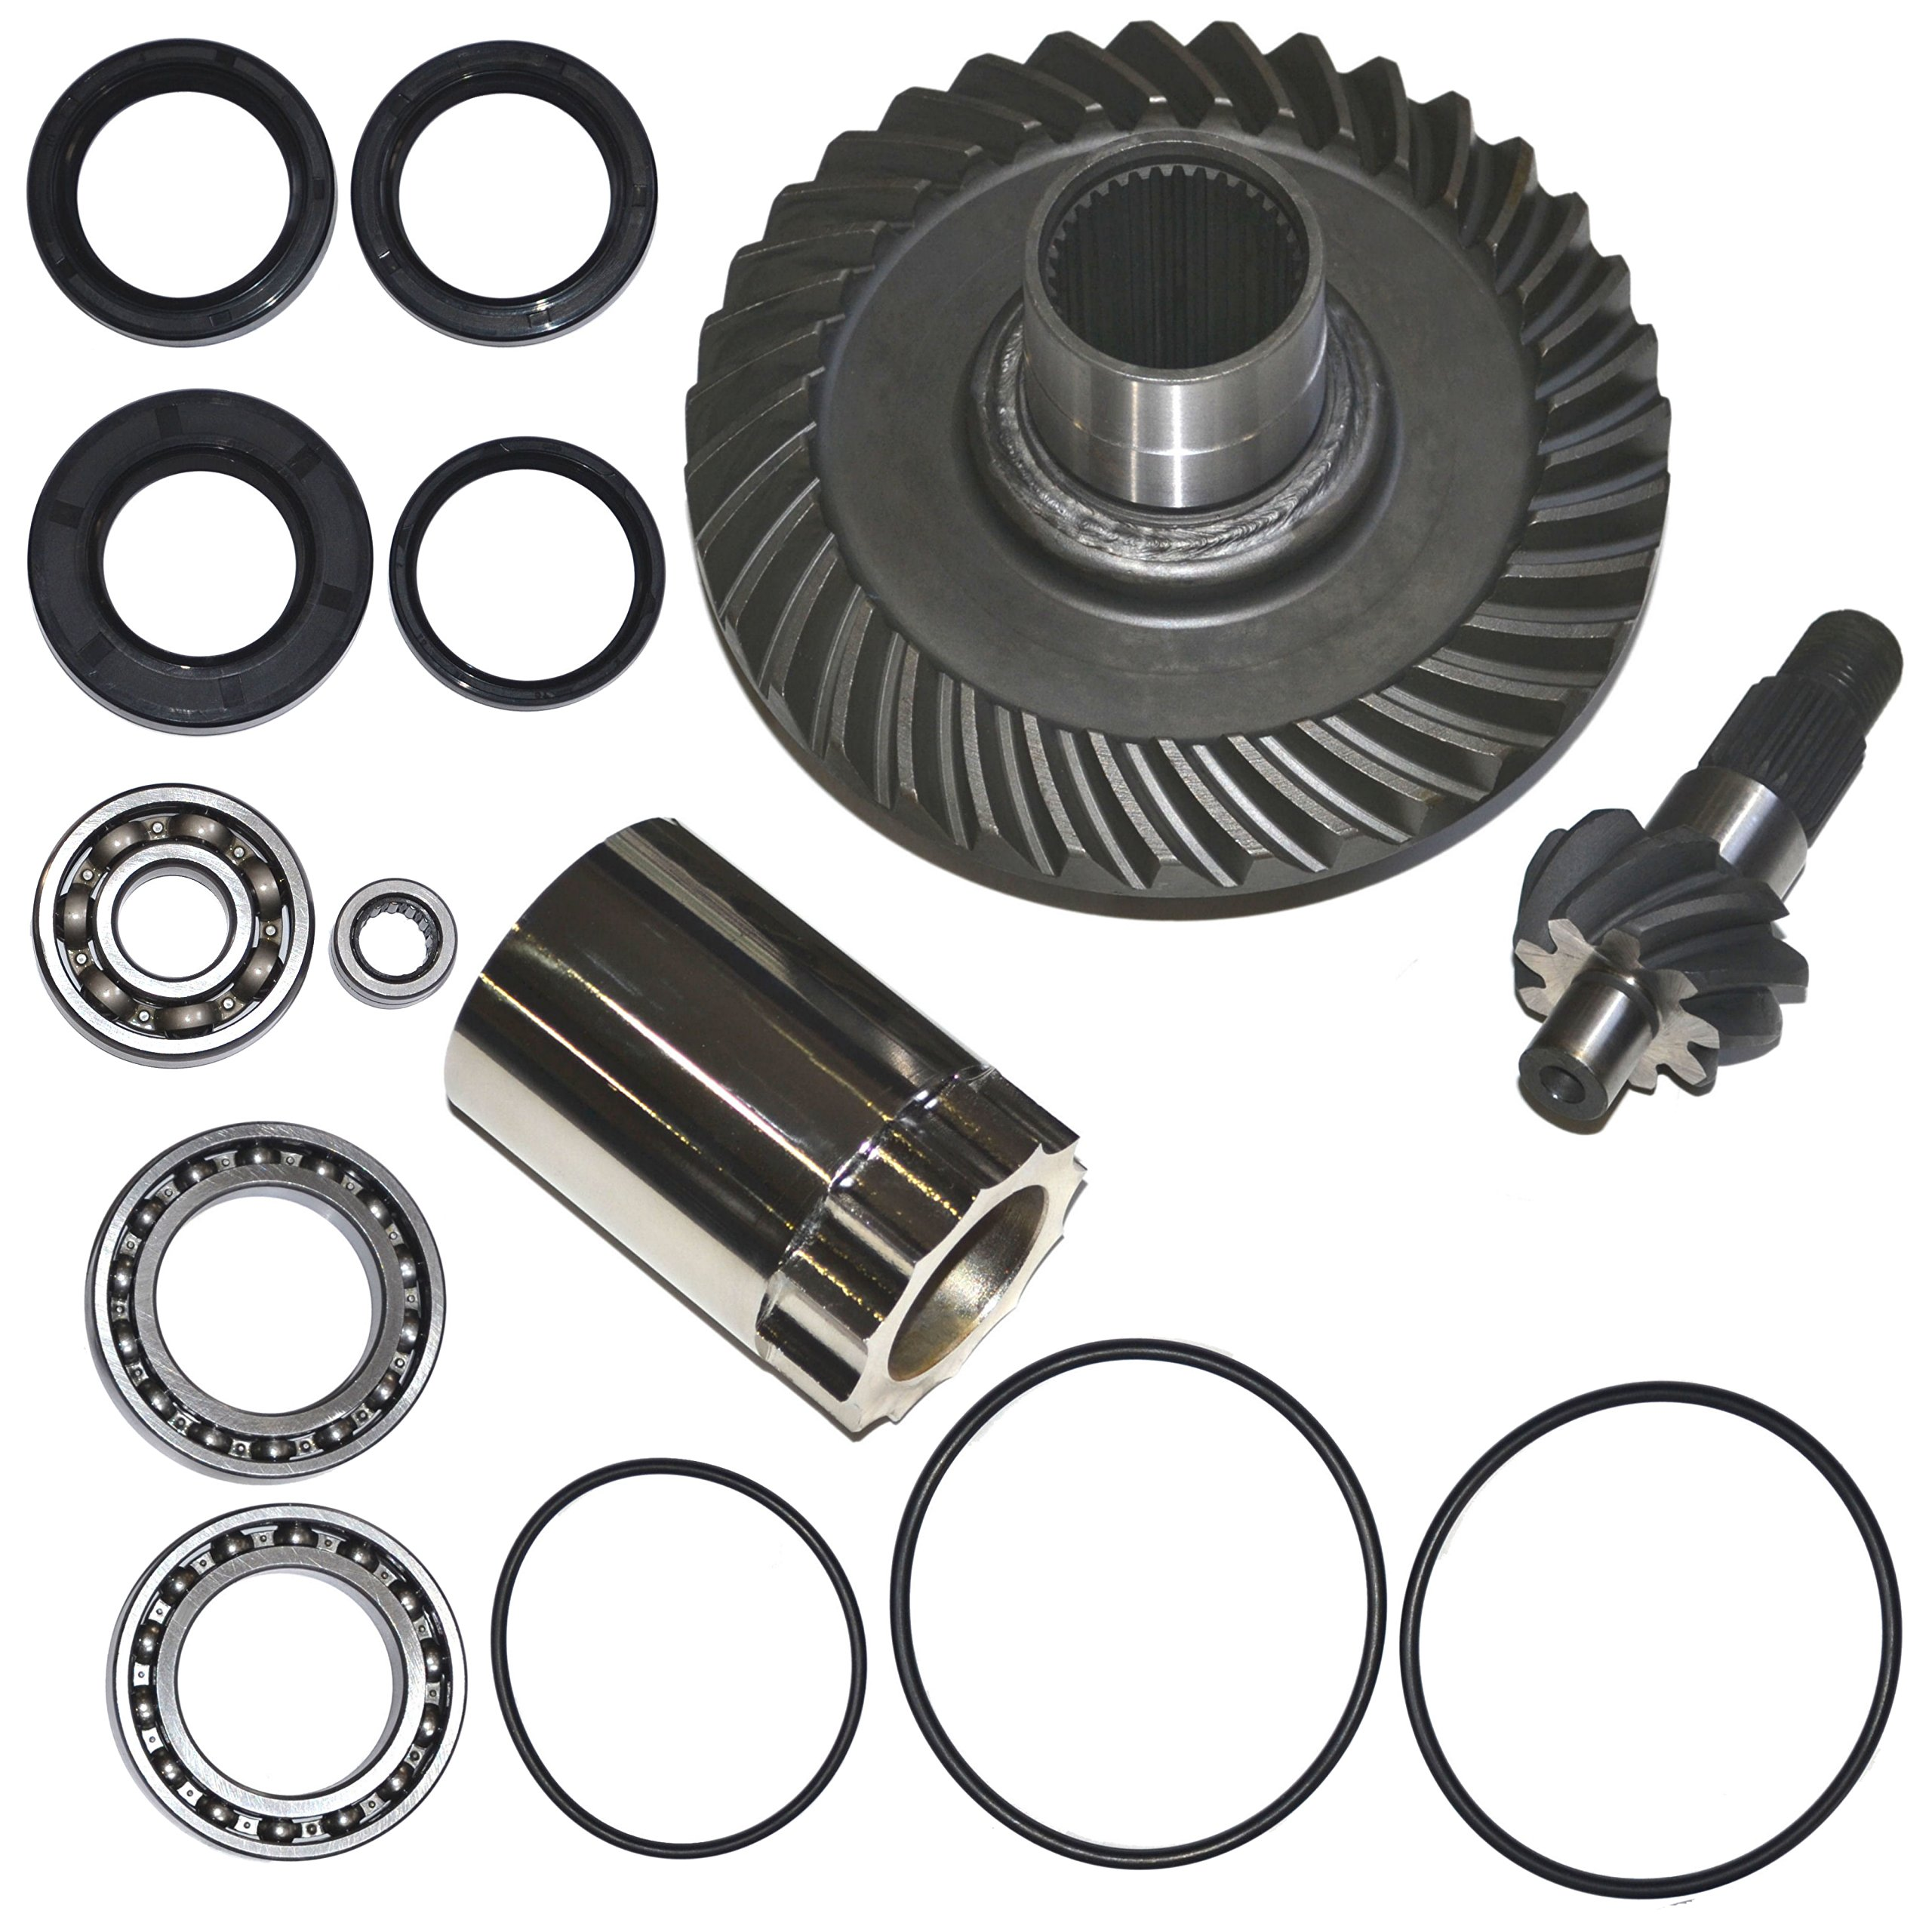 Rear Differential Ring and Pinion Gear Plus Kit Fits 88-00 Honda TRX300 300 Fourtrax